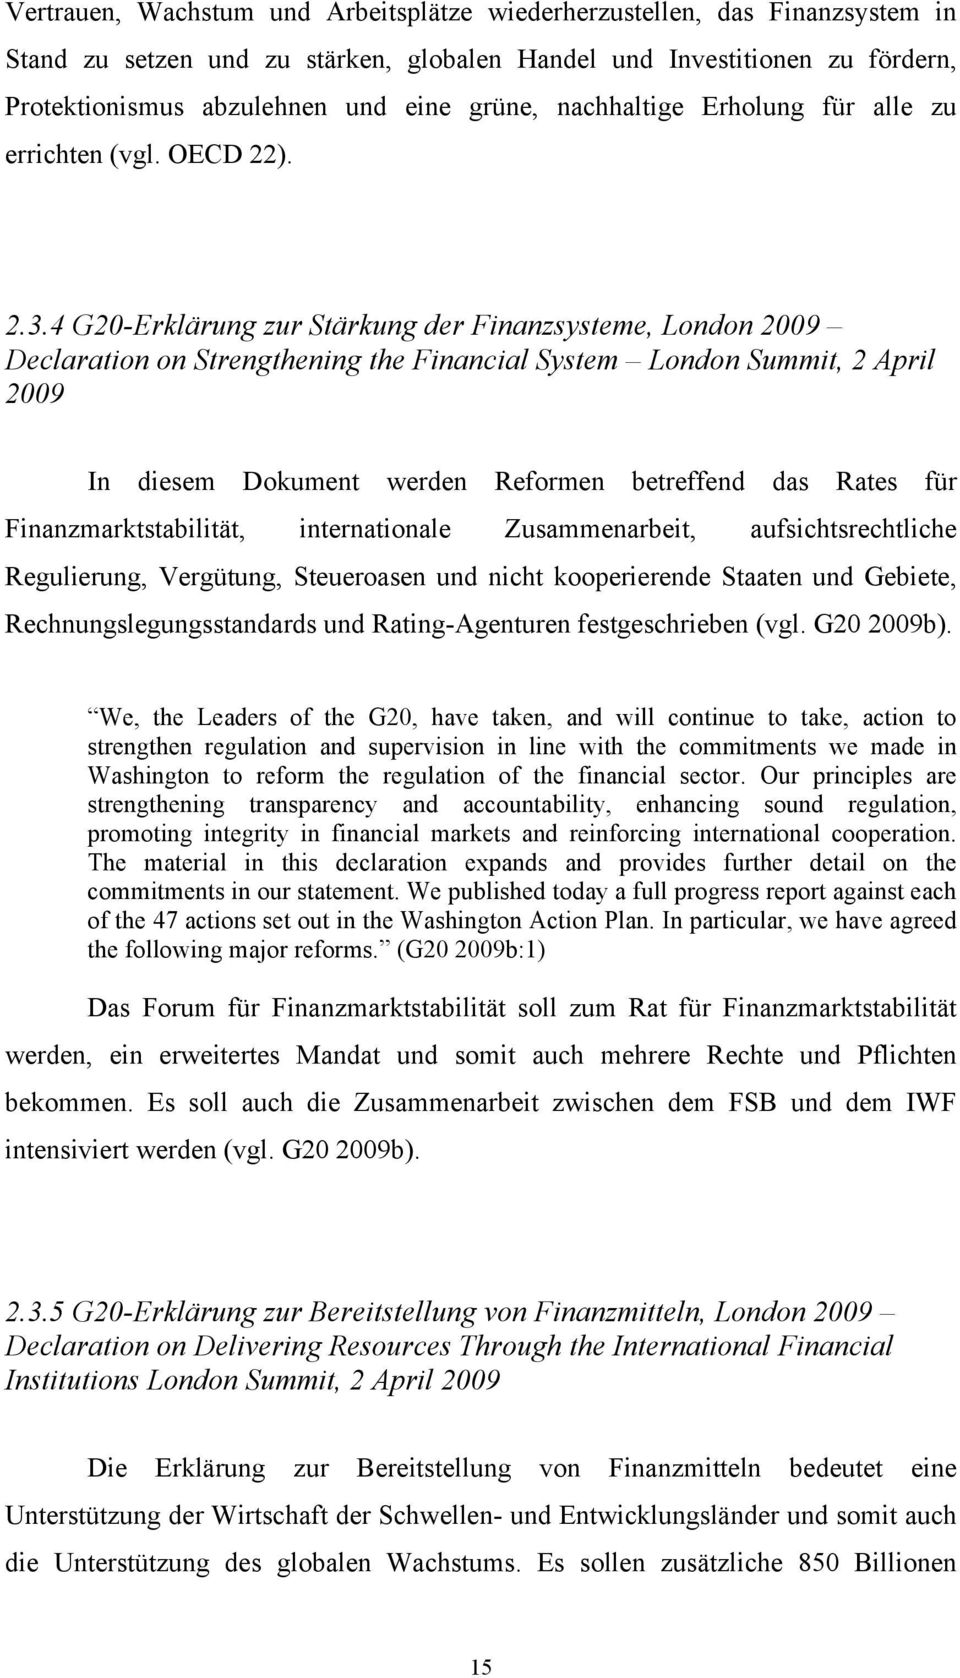 4 -Erklärung zur Stärkung r Finanzsysteme, London 2009 Declaration on Strengthening the Financial System London Summit, 2 April 2009 In diesem Dokument wern Reformen betreffend das Rates für